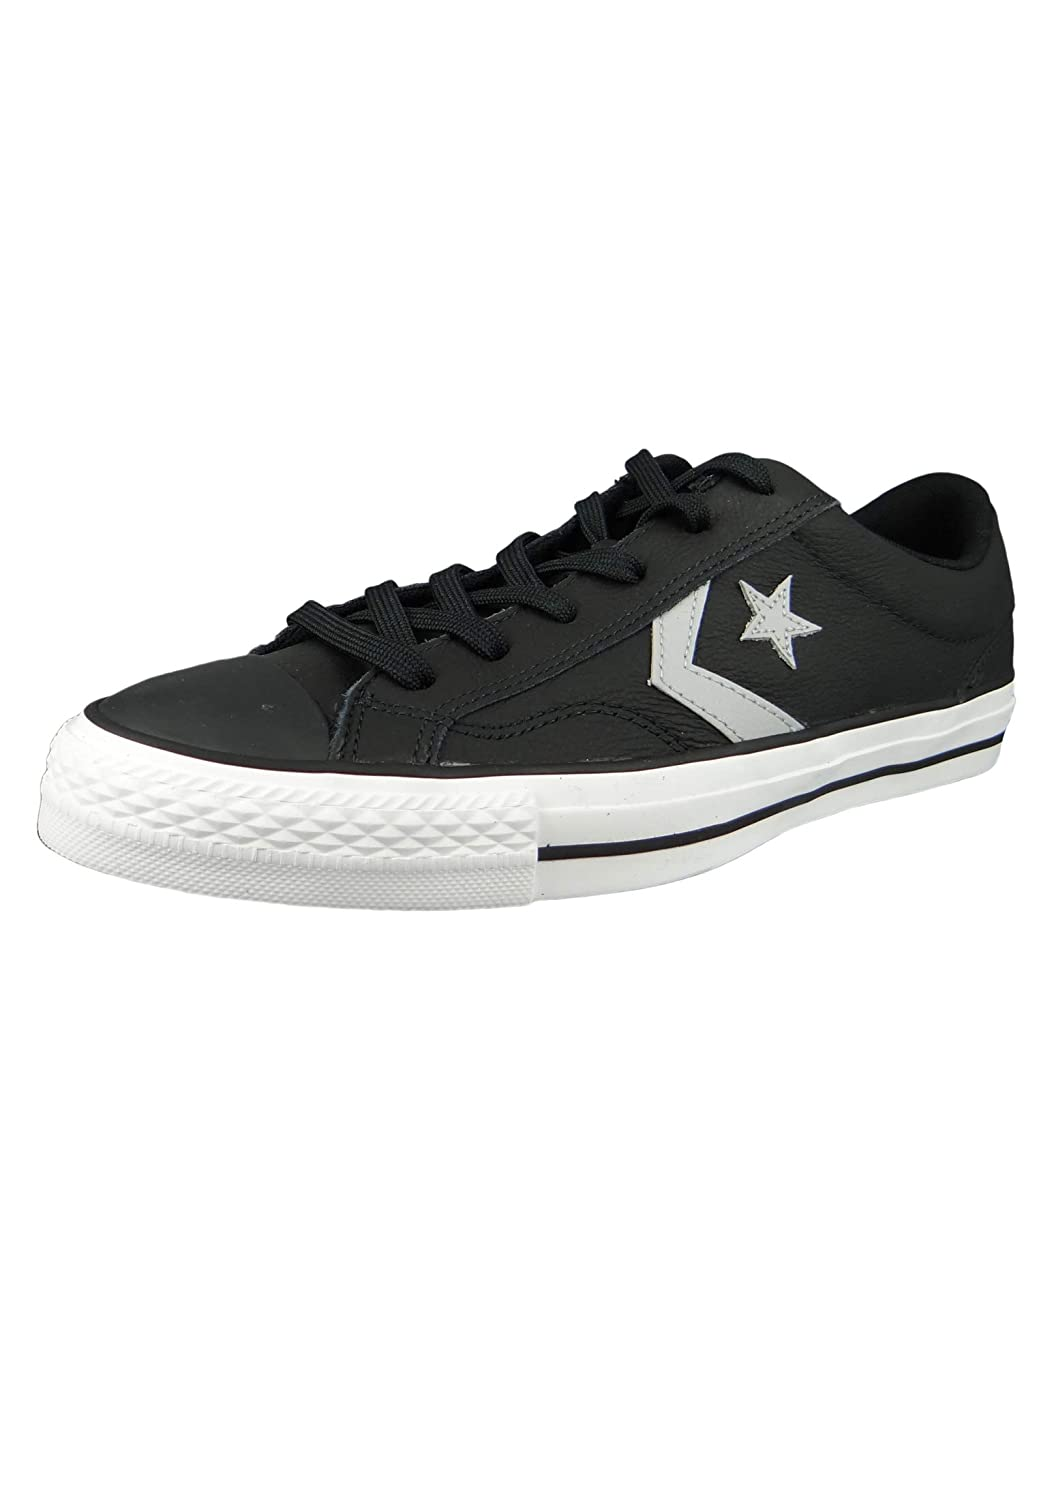 TALLA 42 EU. Converse Lifestyle Star Player Ox, Zapatillas Unisex Adulto